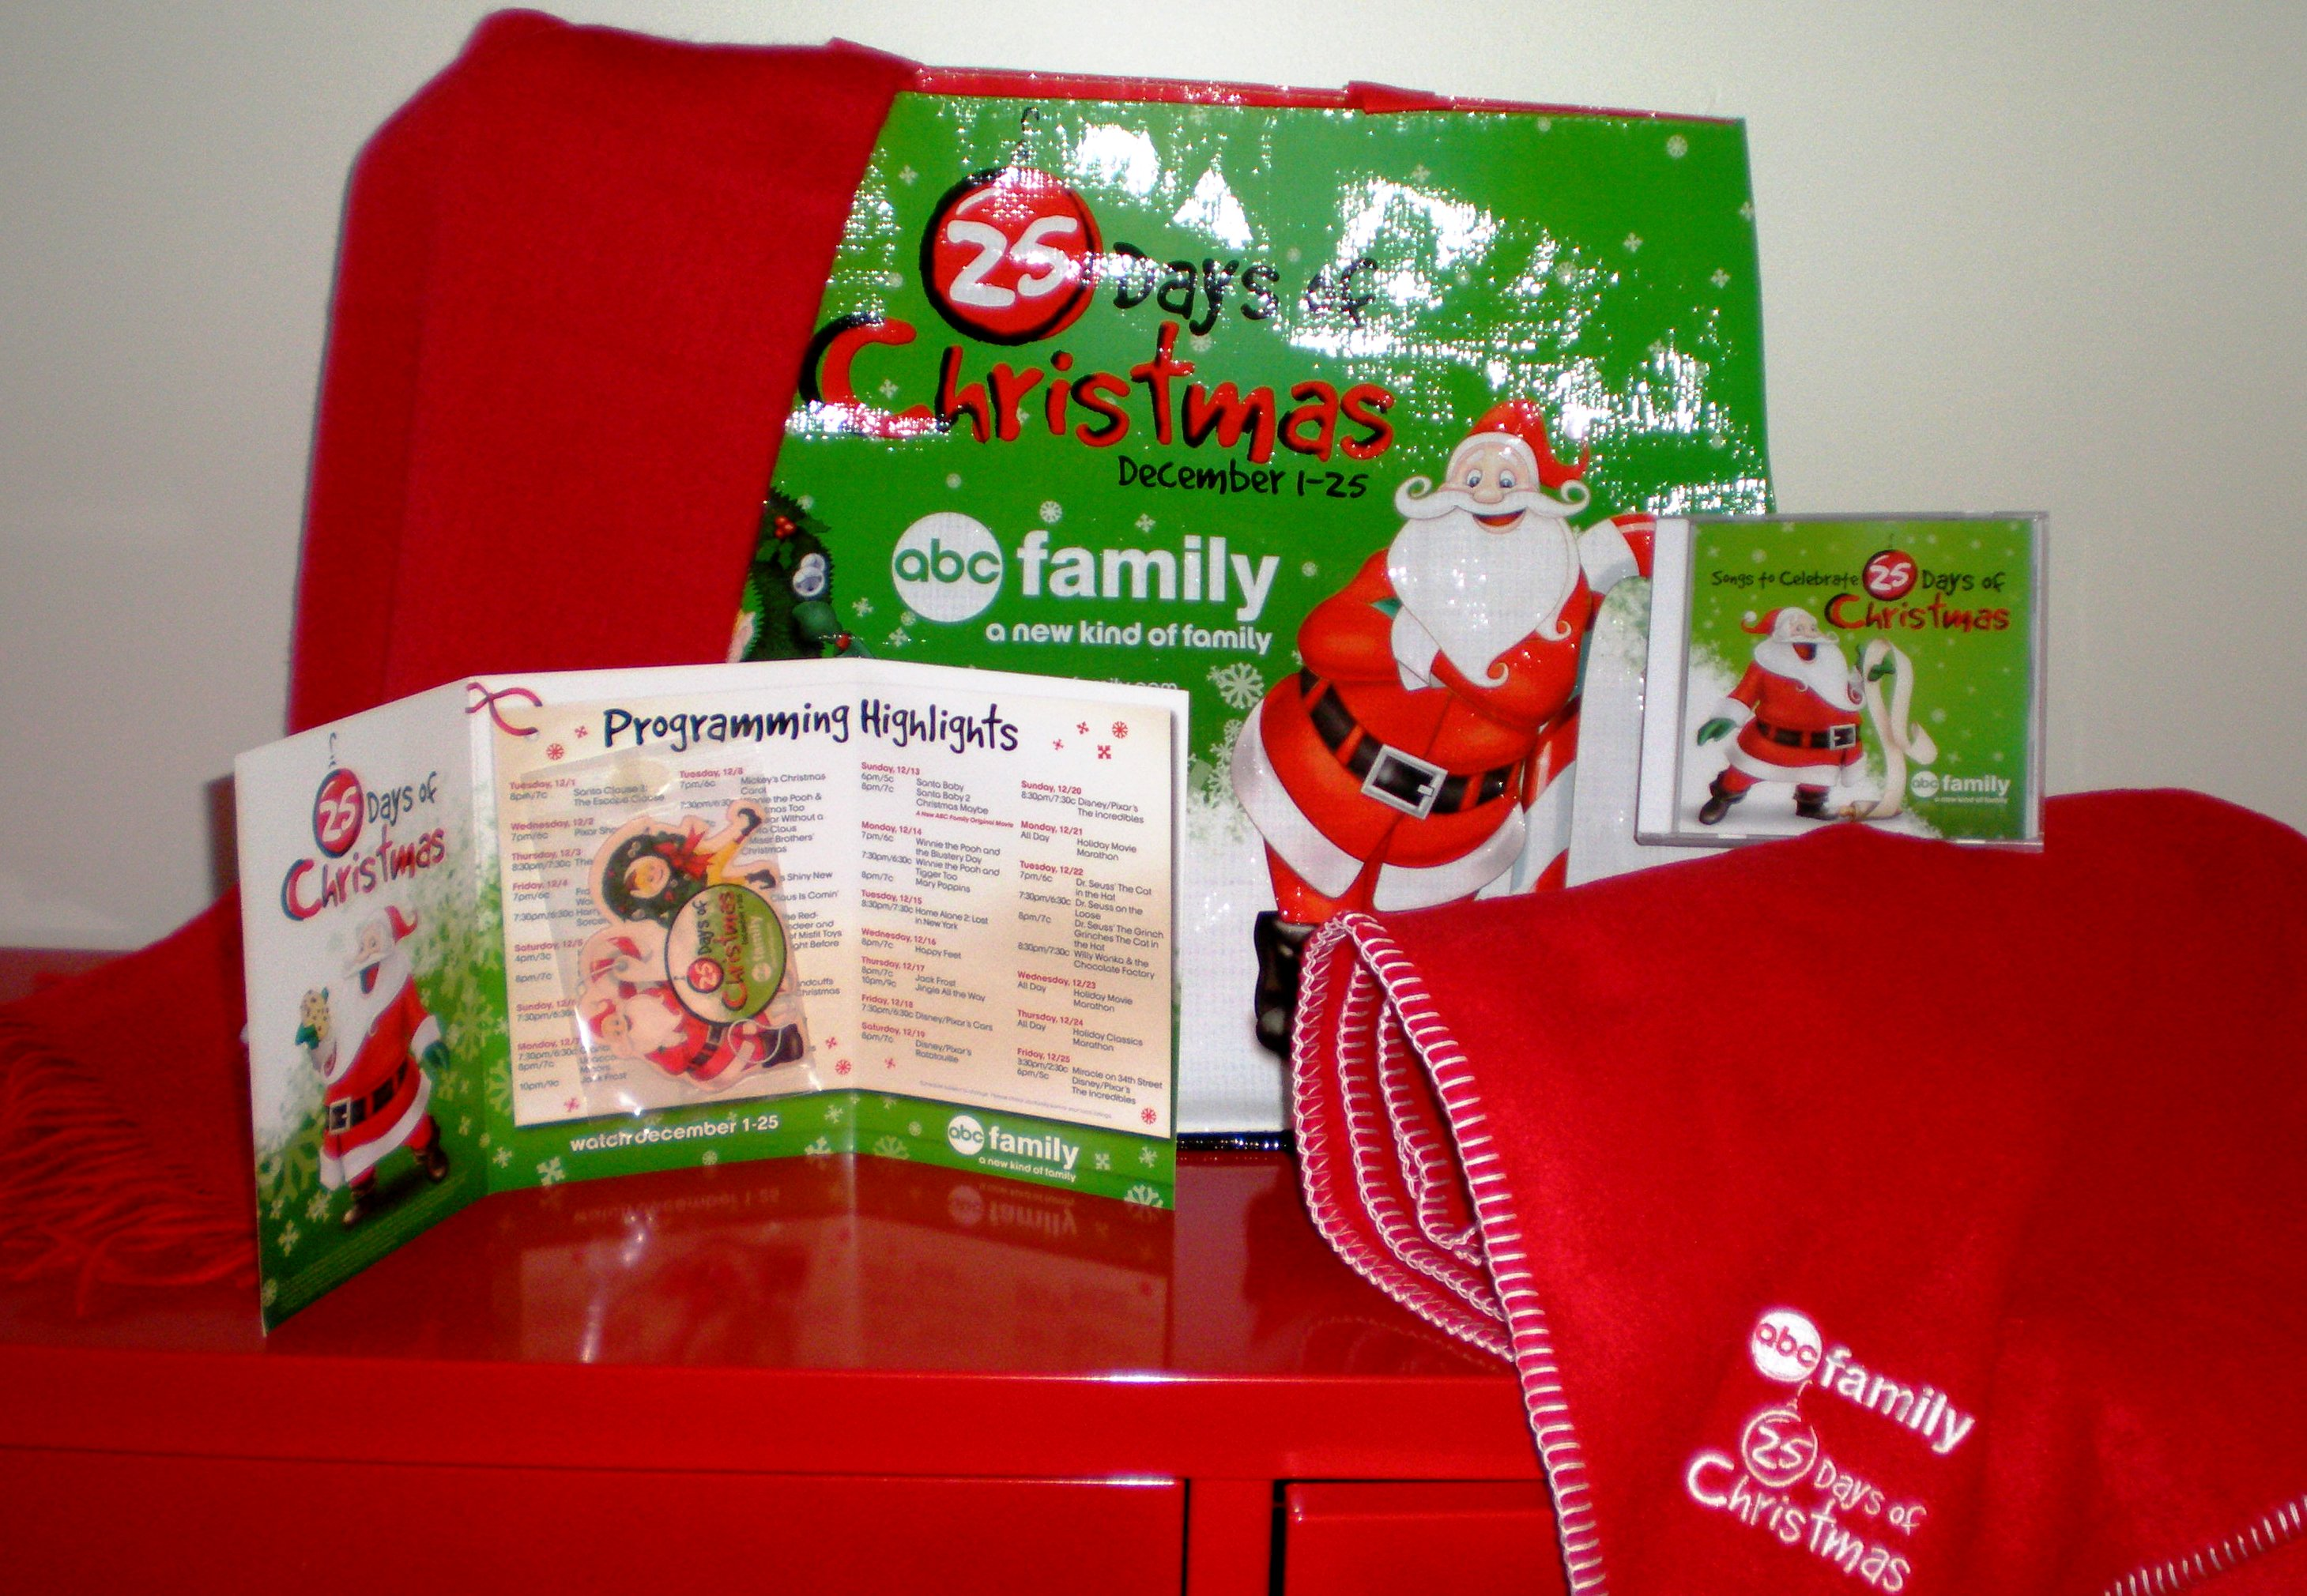 the abc family prize pack includes a 25 days of christmas soundtrack blanket scarf and large sized reusable grocery bag and we are so excited to be able - 25 Days Of Christmas Abc Family